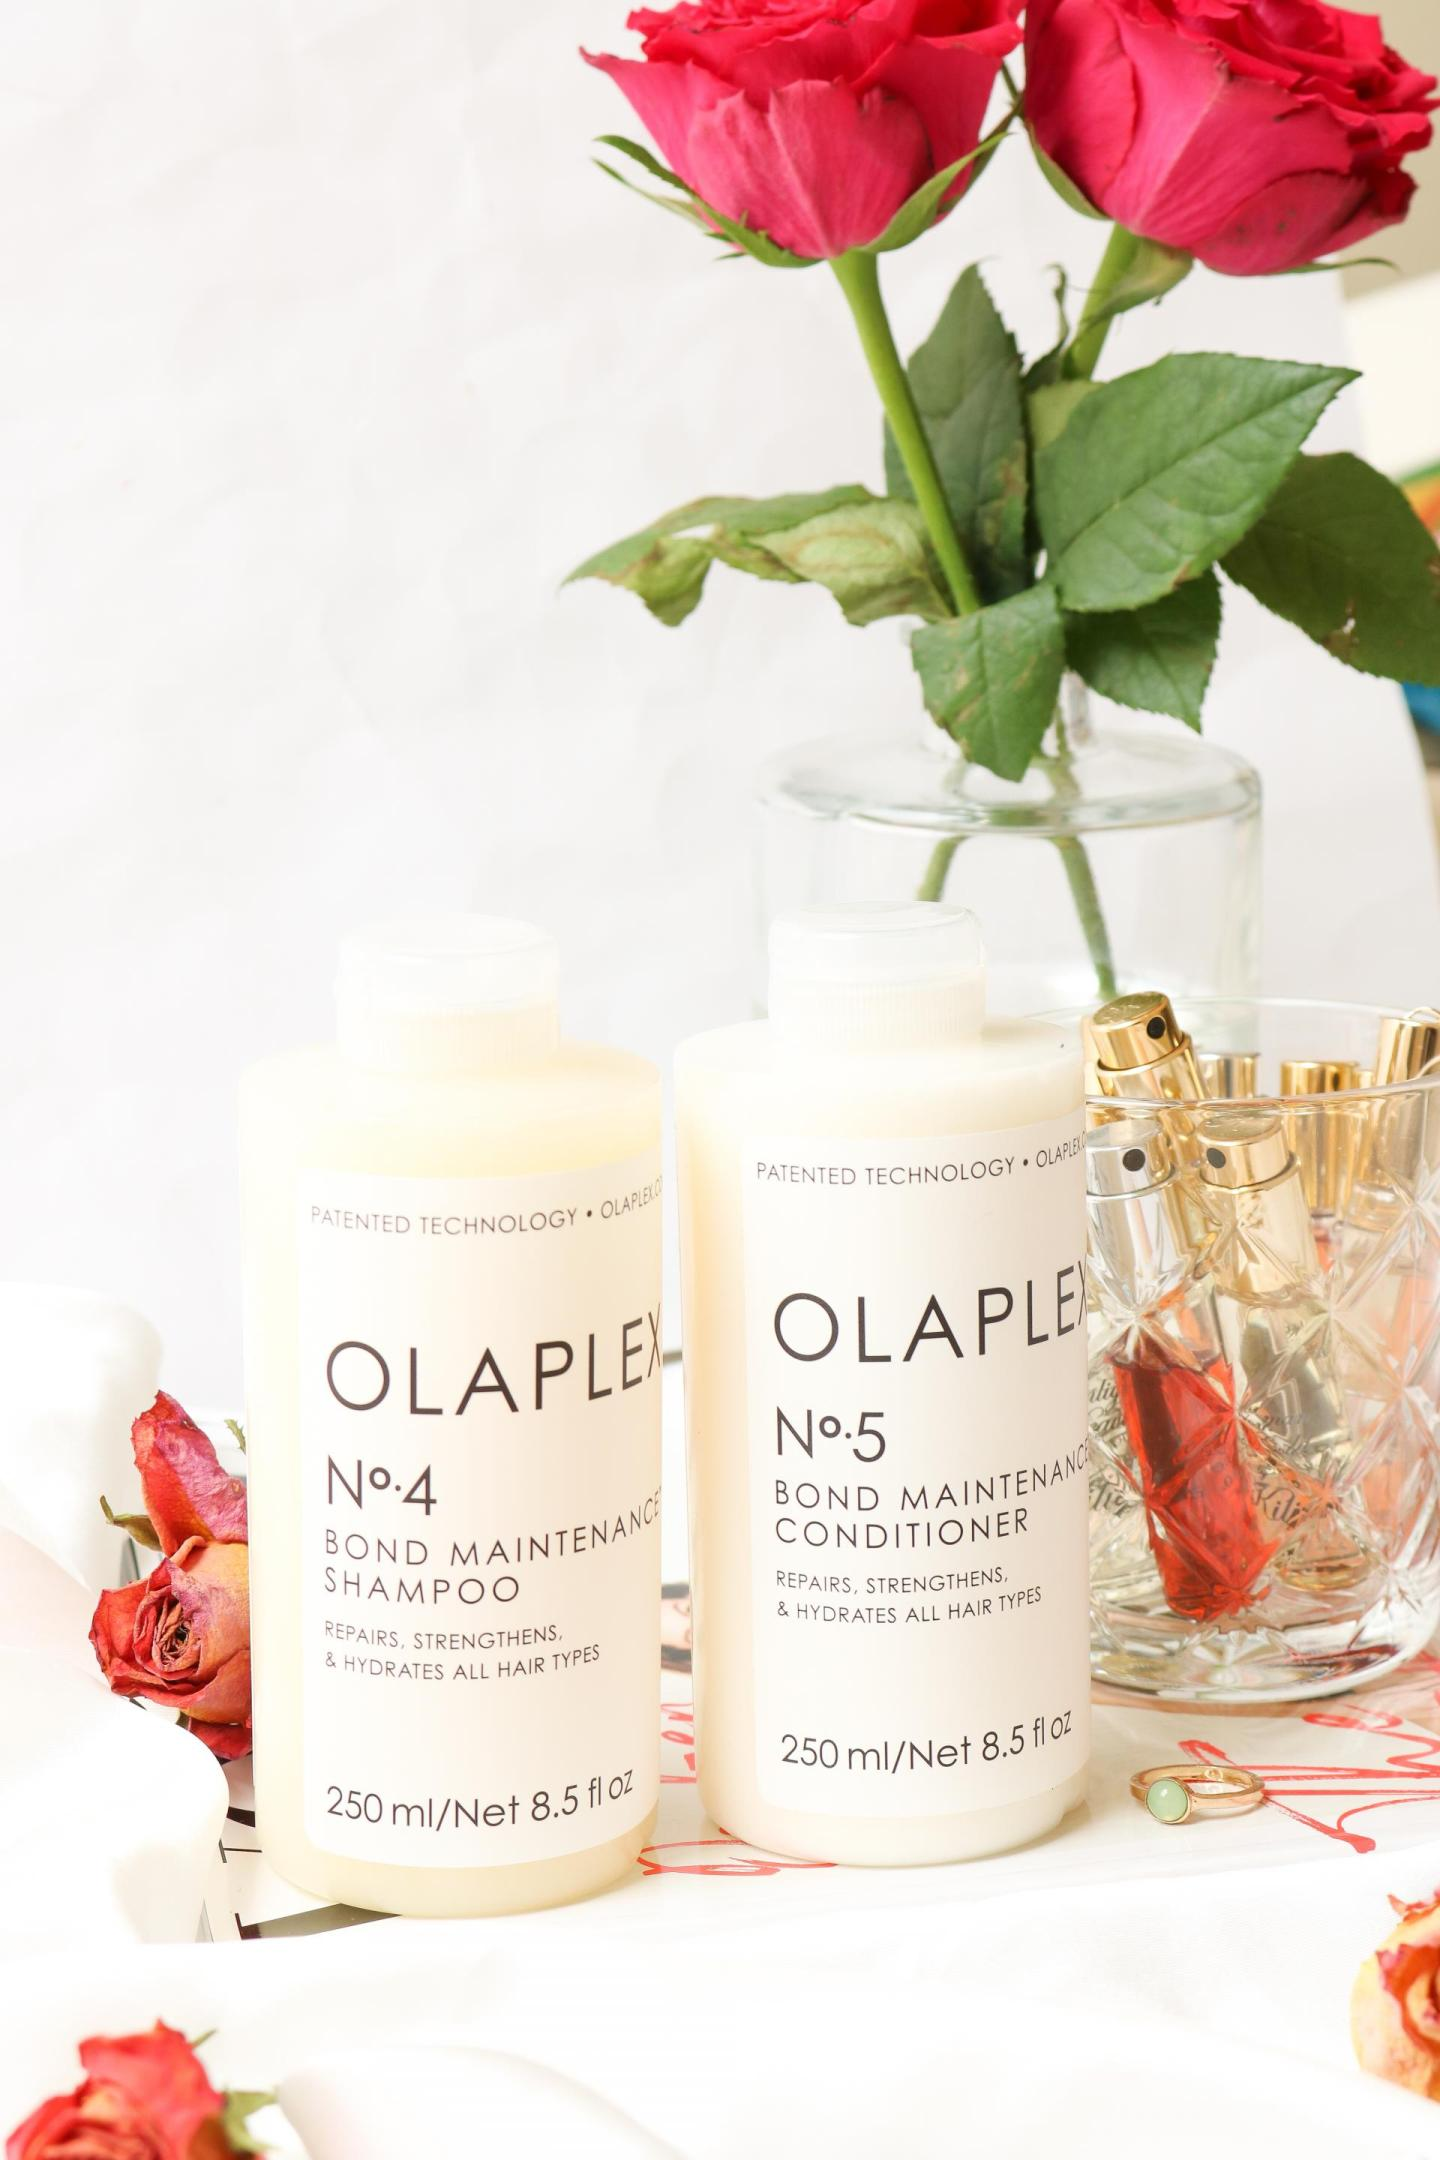 Olaplex nr. 4 Bond Maintenance Shampoo and nr. 5 Bond Maintenance Conditioner